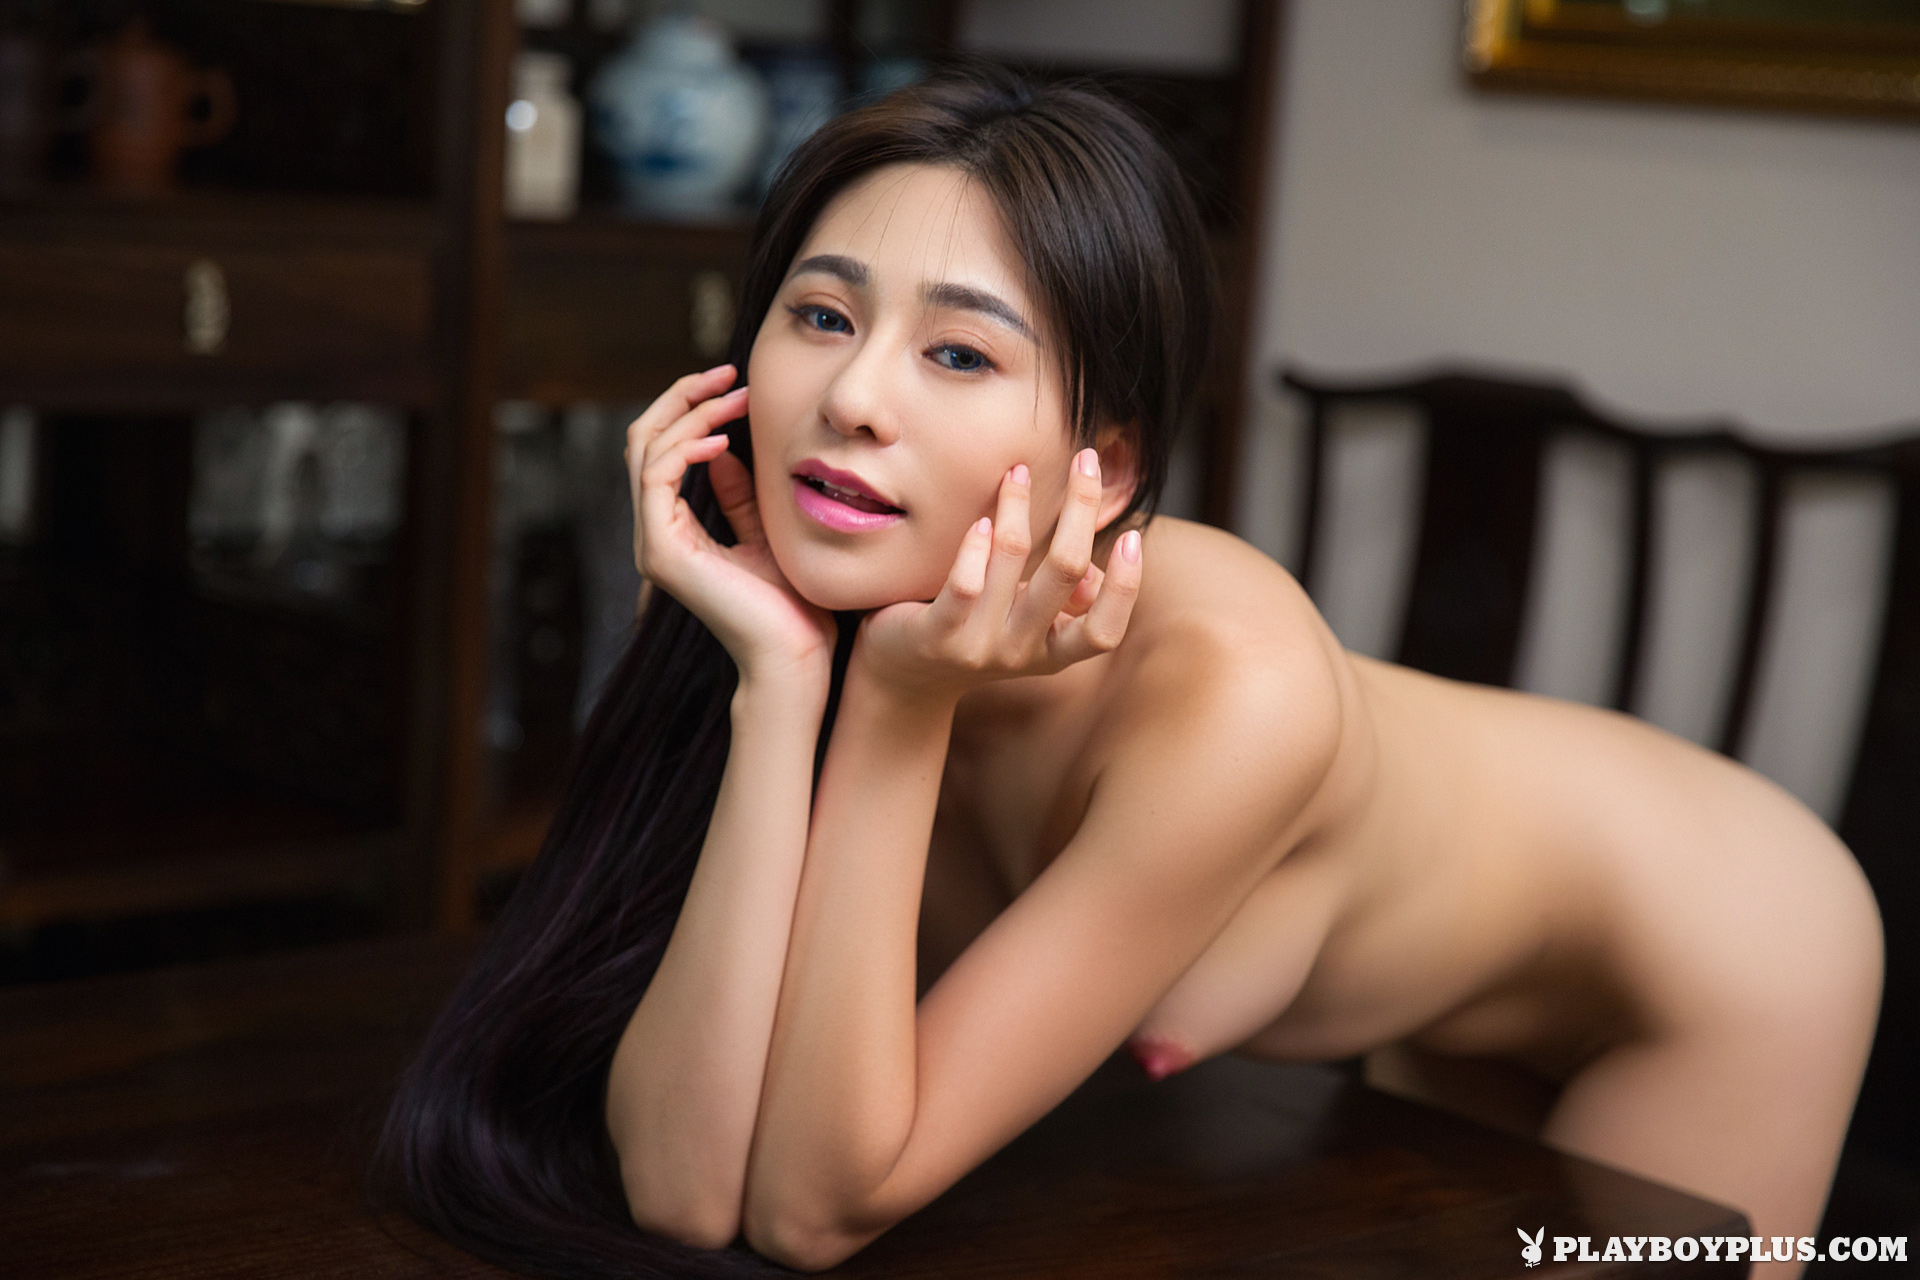 A girl knows sensual lesbian sex with two hot babes - 3 part 4